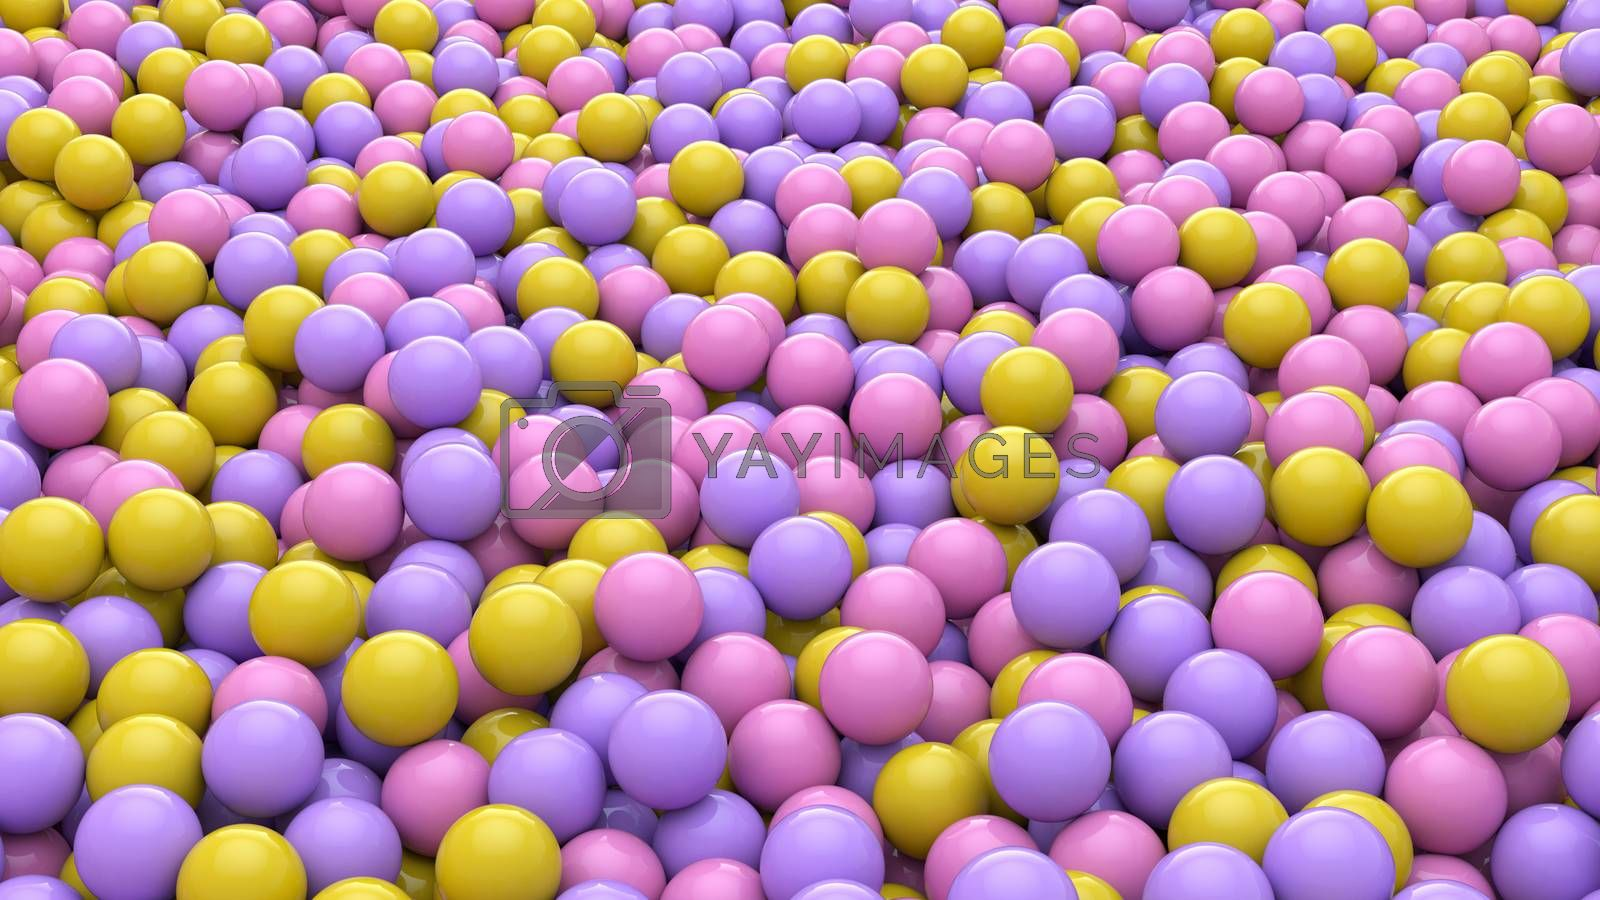 3d render of Abstract colorful spheres balls background. Primitive shapes, minimalistic design, party decoration.